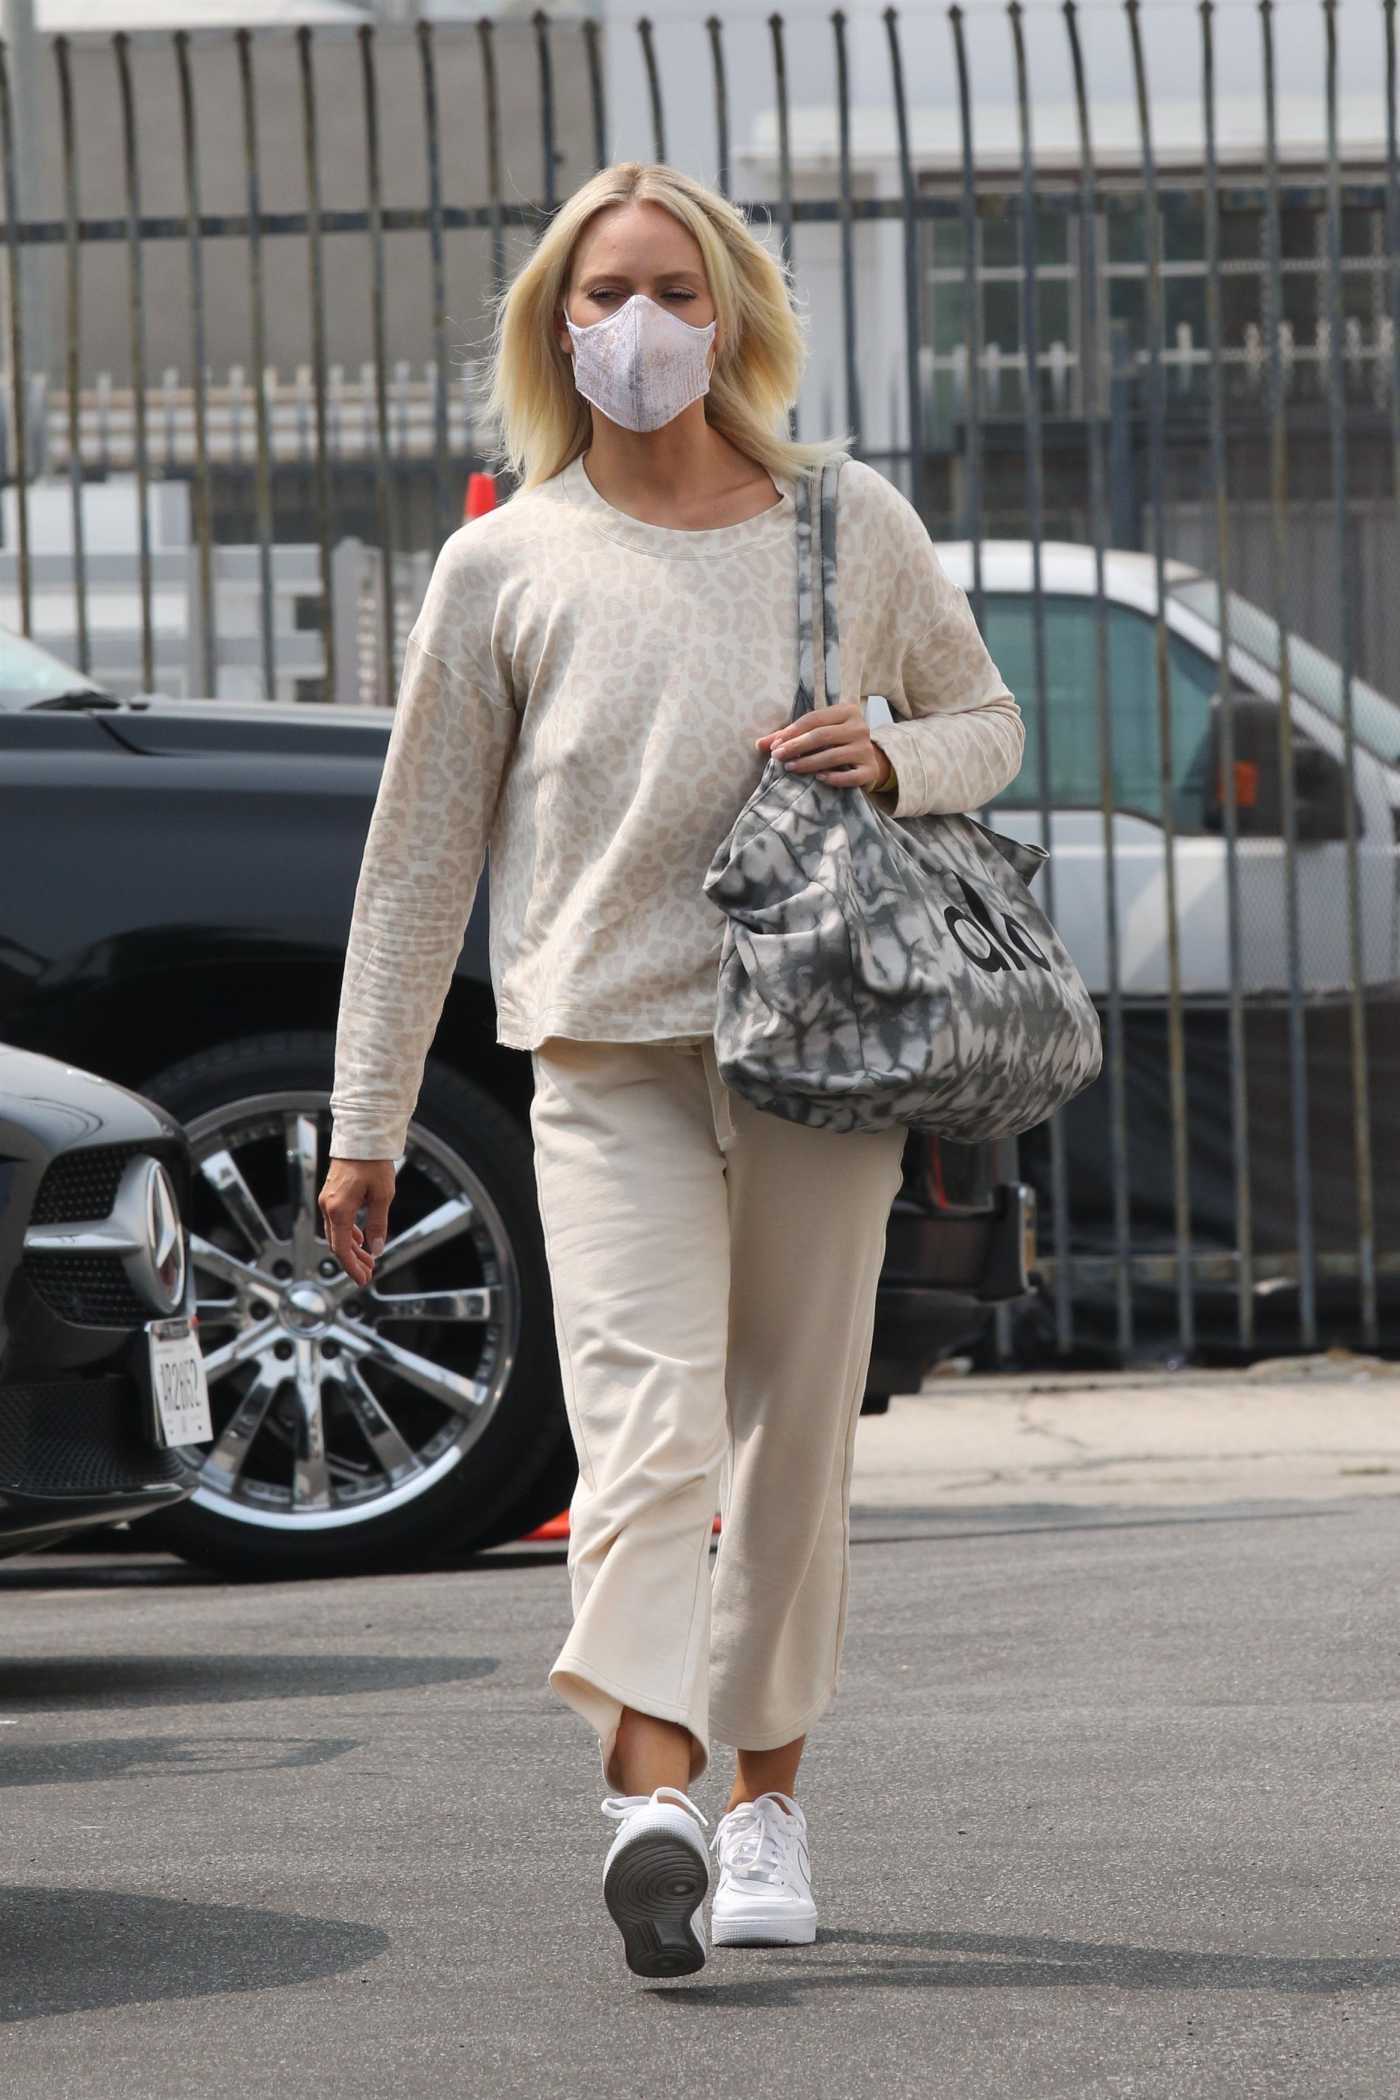 Peta Murgatroyd in a White Sneakers Arrives at the DWTS Studio in Los Angeles 09/12/2020